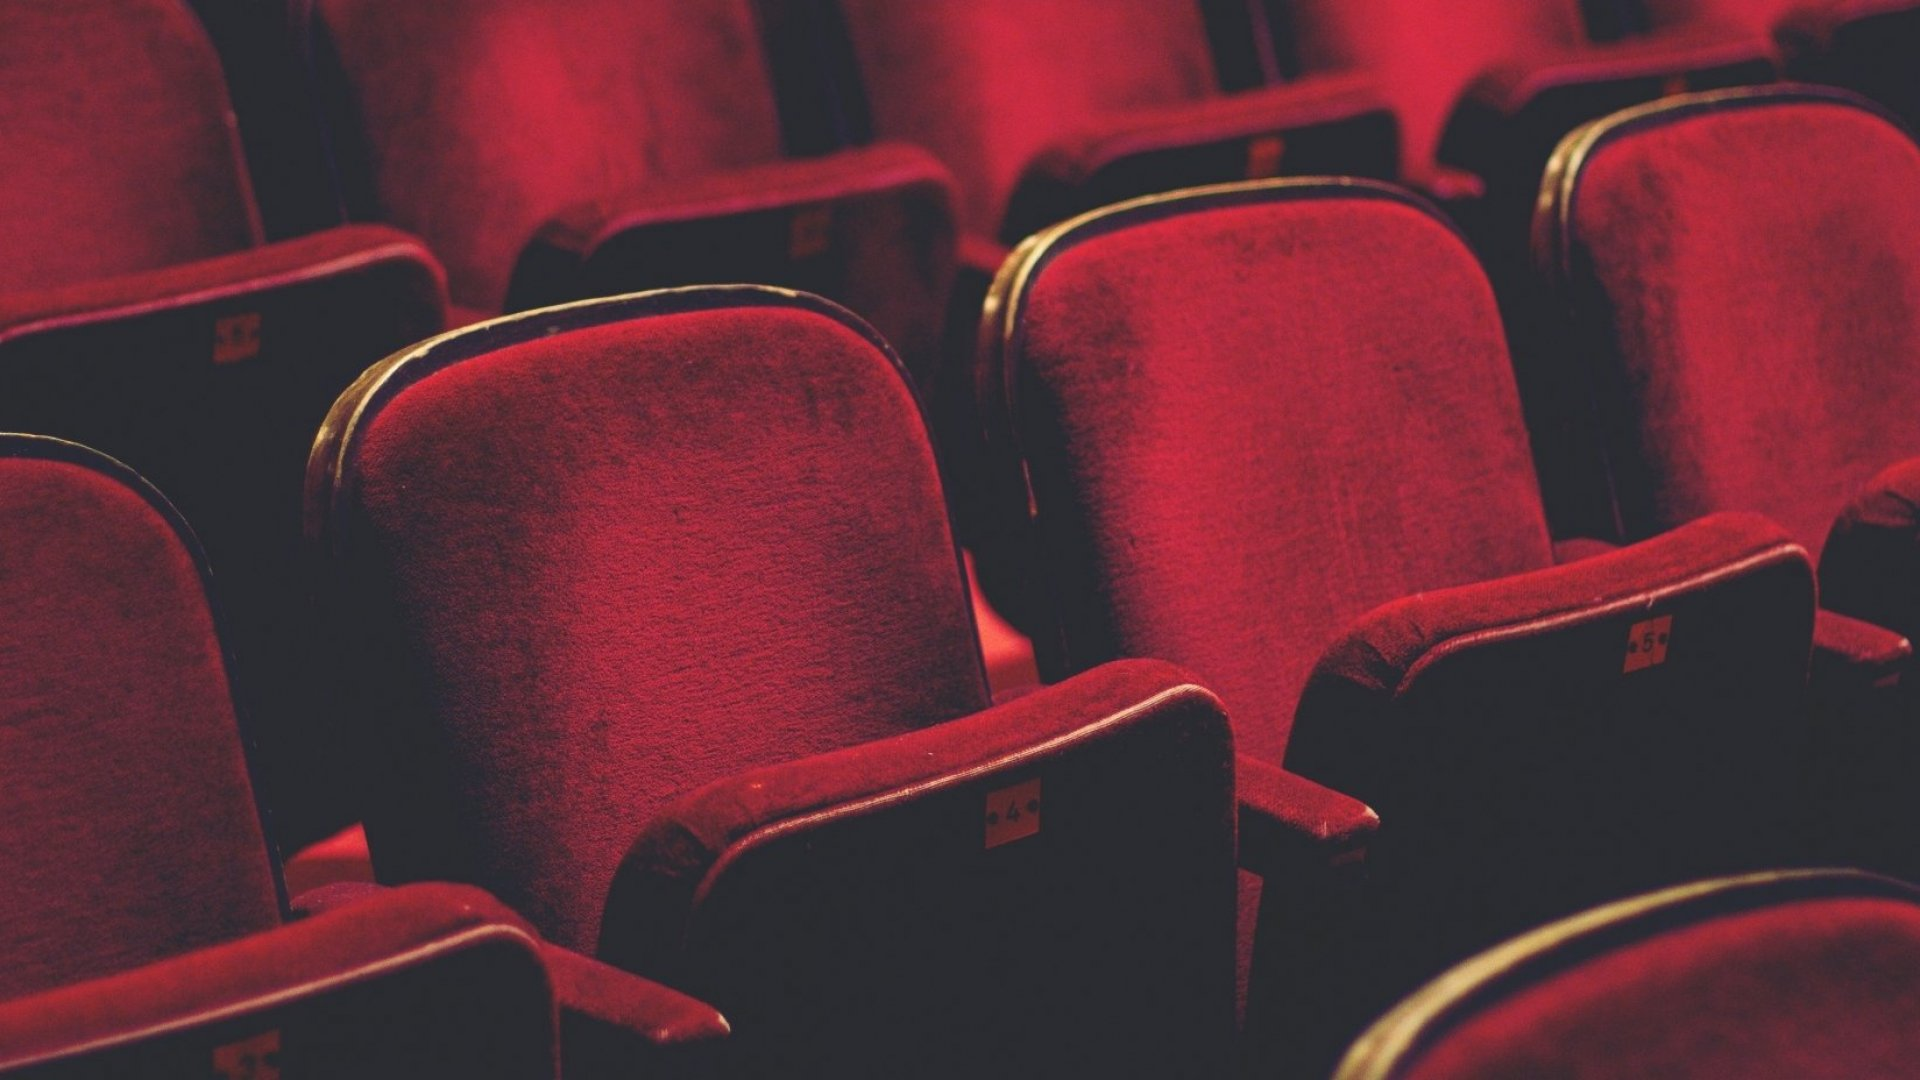 The MoviePass Business Model Just Imploded. Here's Why